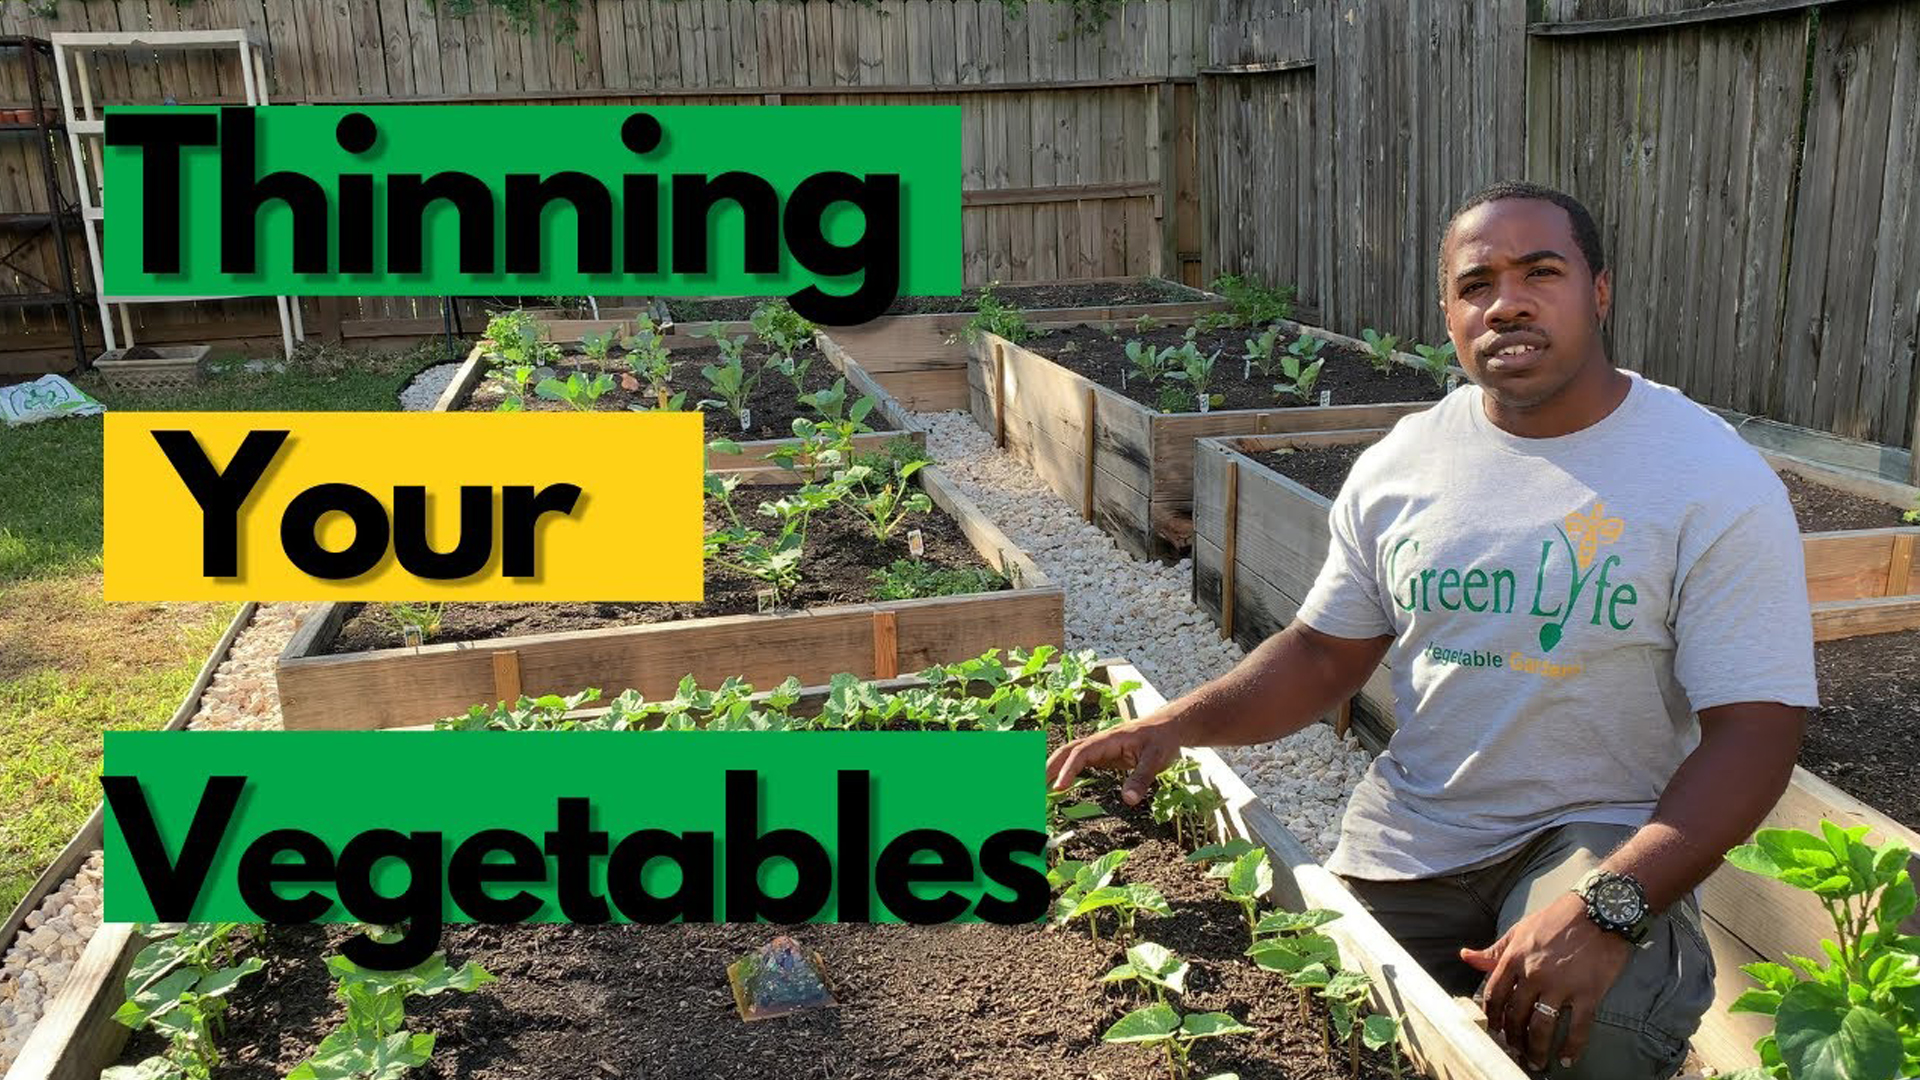 Thinning Your Vegetable Plants